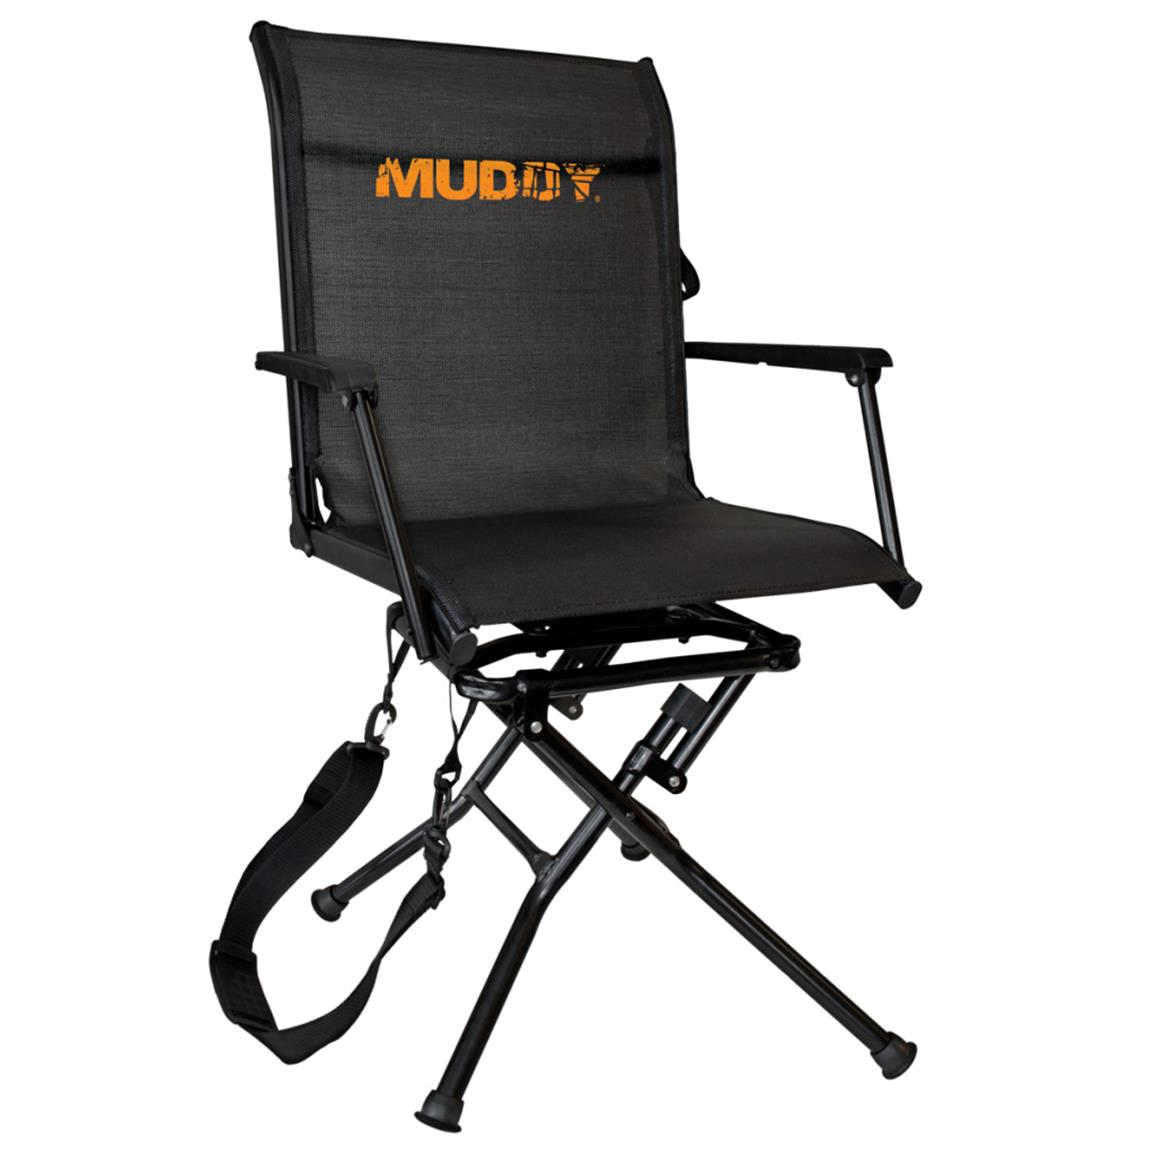 Muddy Swivel-Ease Ground Blind Chair